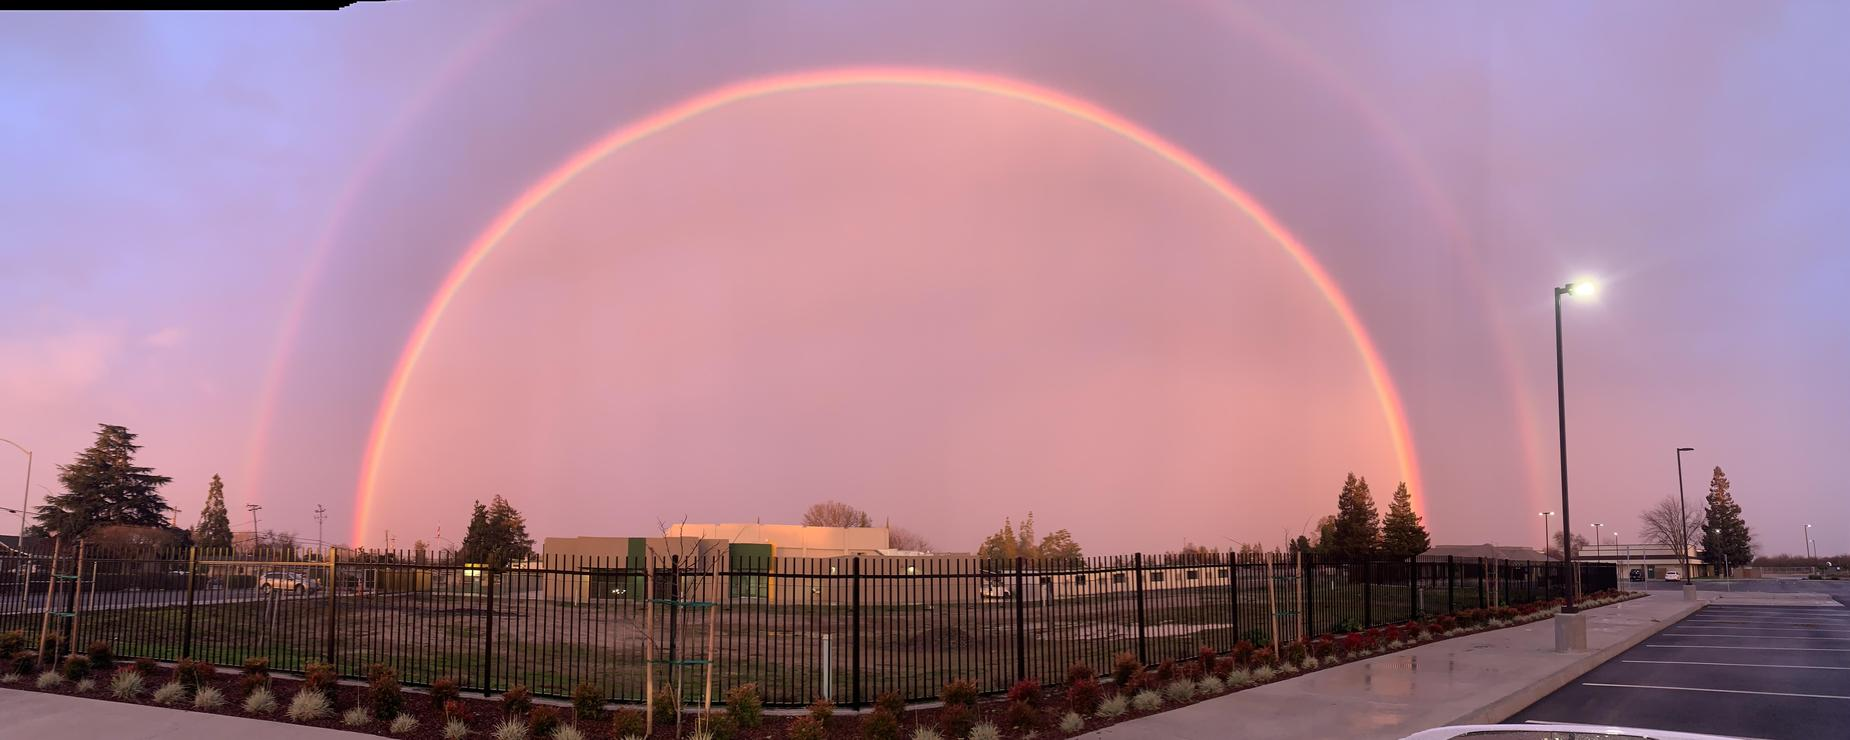 real double rainbow over Dent Elementary